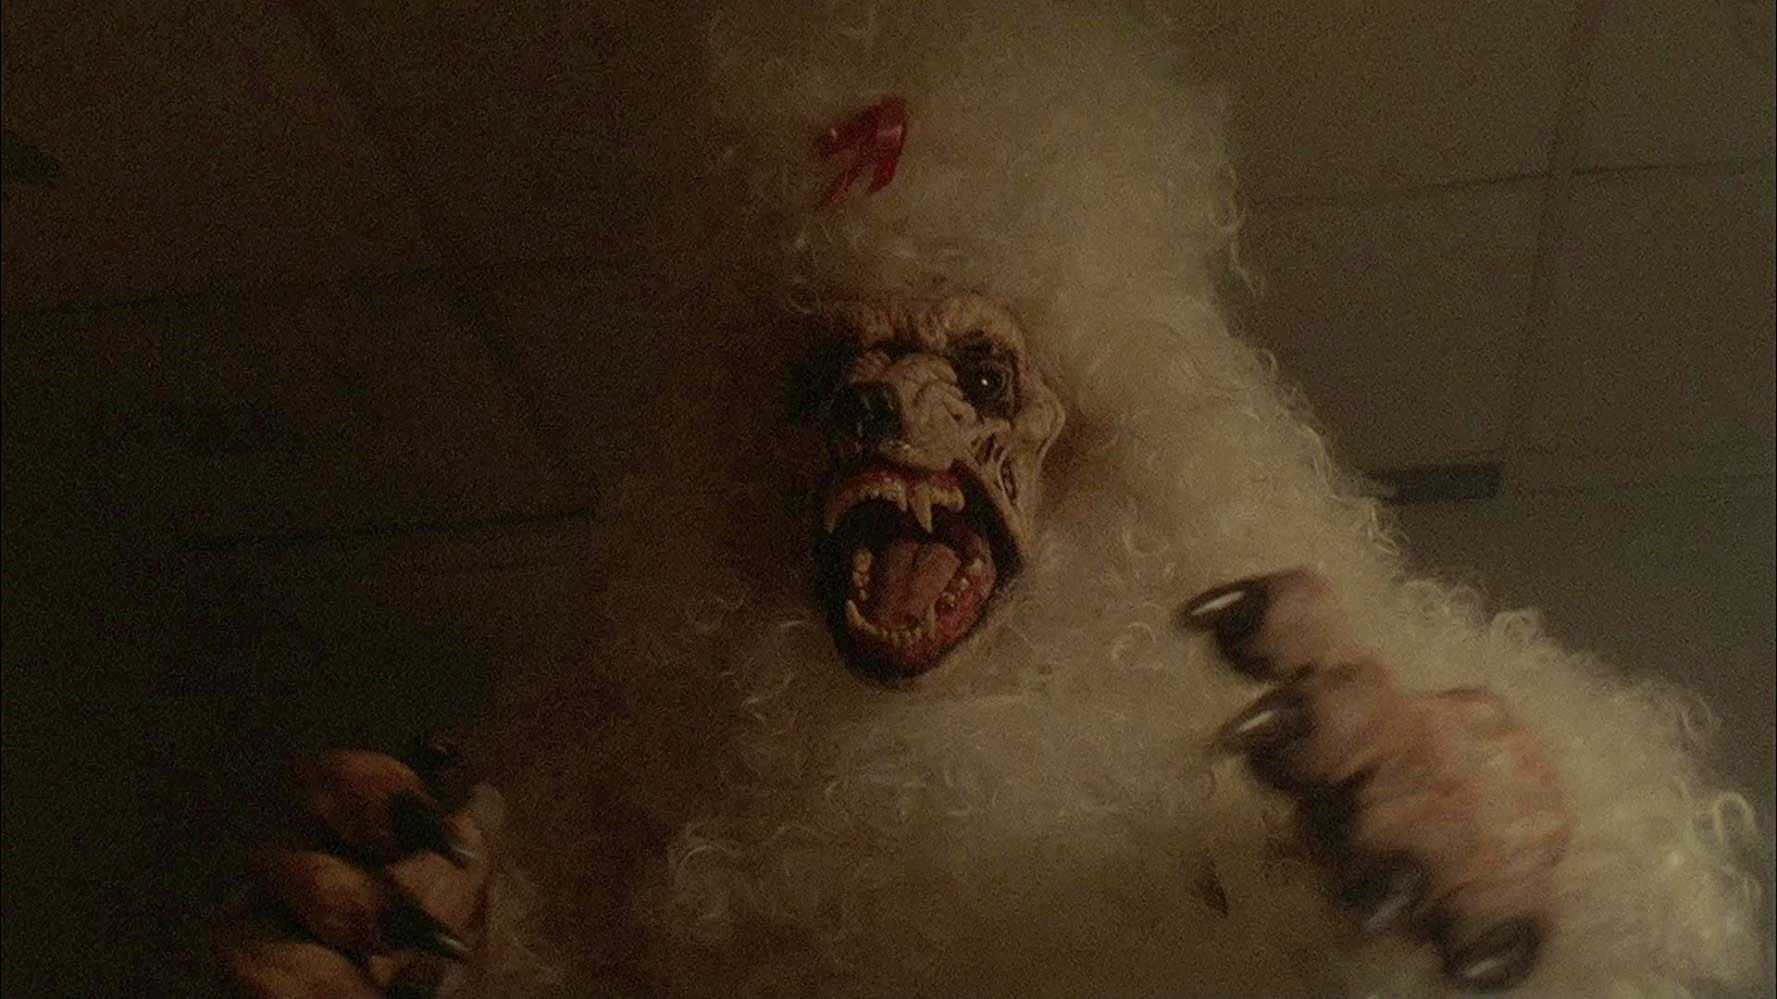 The giant zombie poodle in The Boneyard (1991)